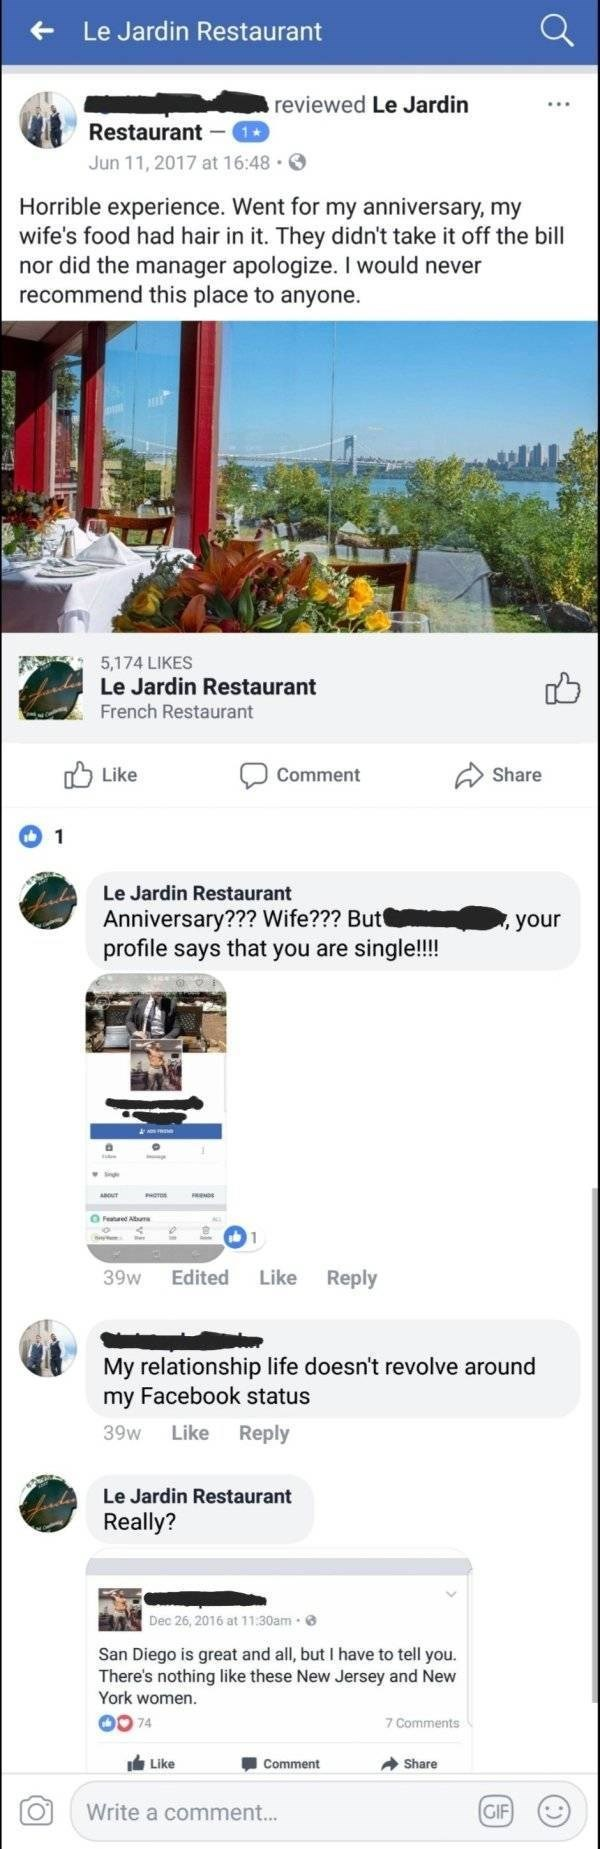 Product - Le Jardin Restaurant reviewed Le Jardin Restaurant Jun 11, 2017 at 16:48 Horrible experience. Went for my anniversary, my wife's food had hair in it. They didn't take it off the bill nor did the manager apologize. I would never recommend this place to anyone 5,174 LIKES Le Jardin Restaurant French Restaurant Like Share Comment 1 Le Jardin Restaurant Anniversary??? Wife??? But profile says that you are single!!!! your Edited Like Reply 39w My relationship life doesn't revolve around my